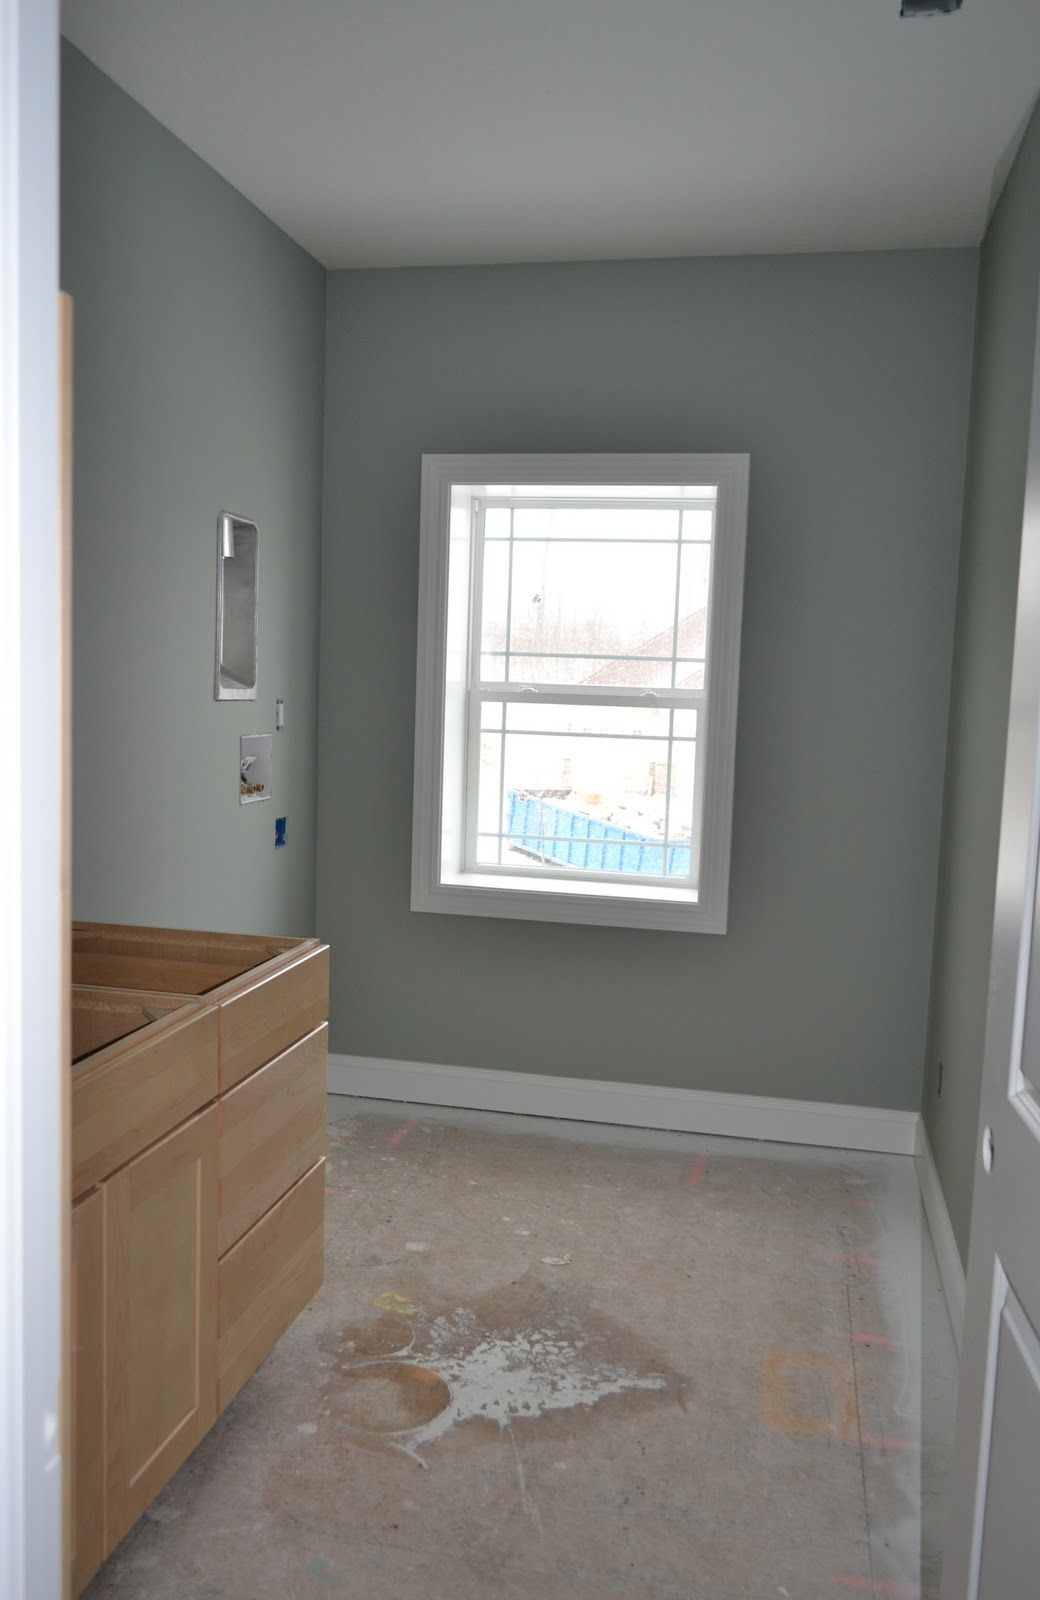 Oyster Bay Sherwin Williams Next One Down On The Strip From Comfort Gray Splash Of Paint